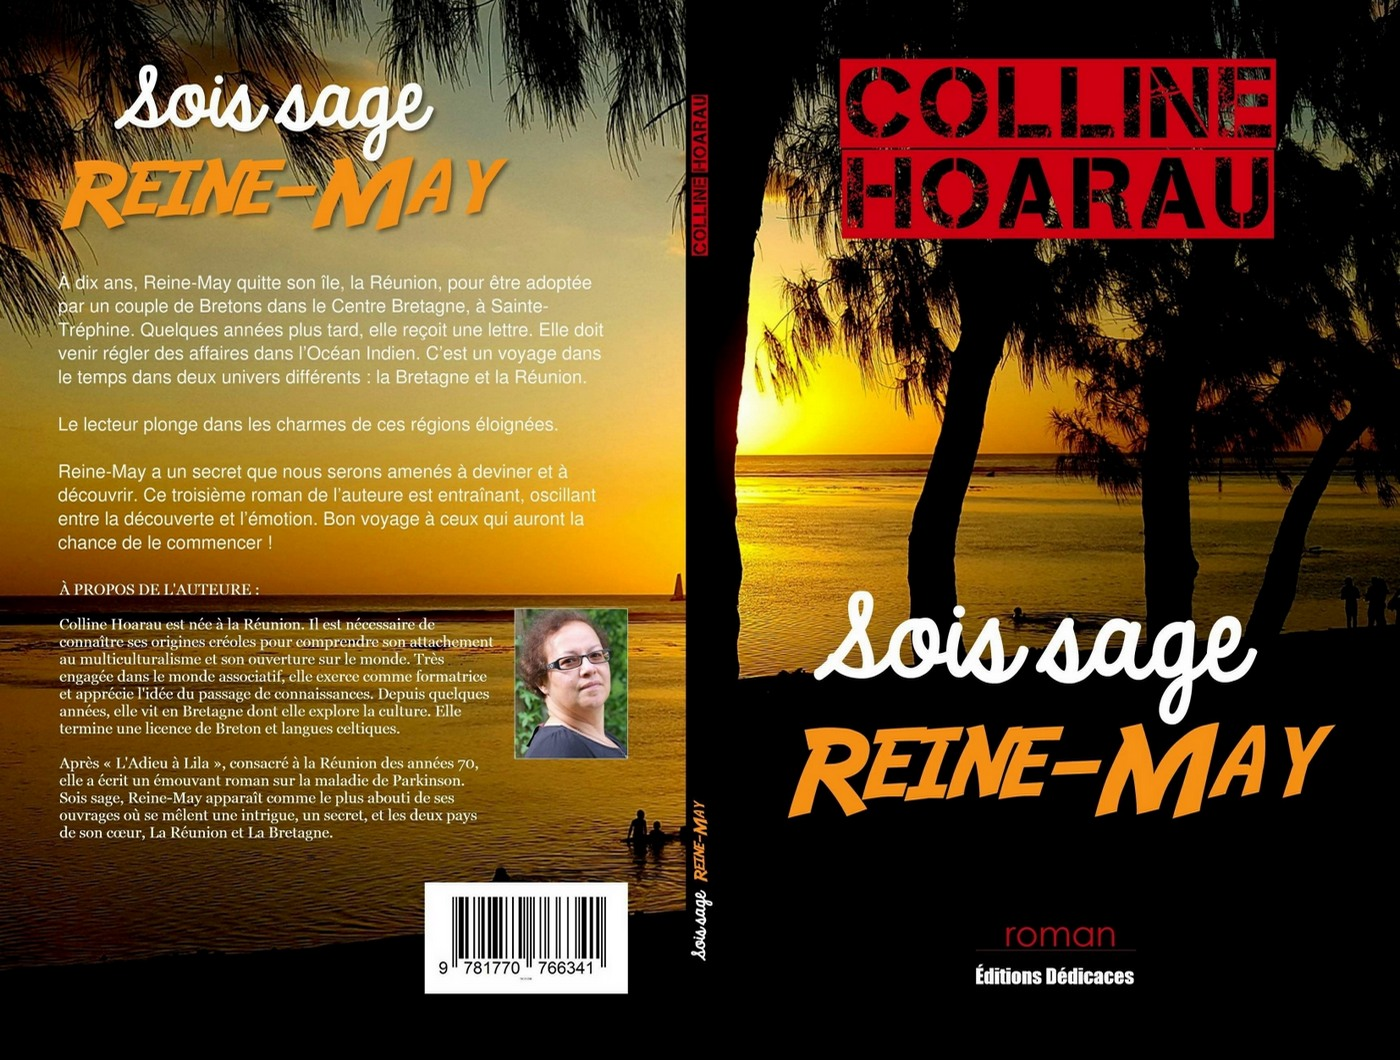 Sois sage, Reine-May, par Colline Hoarau